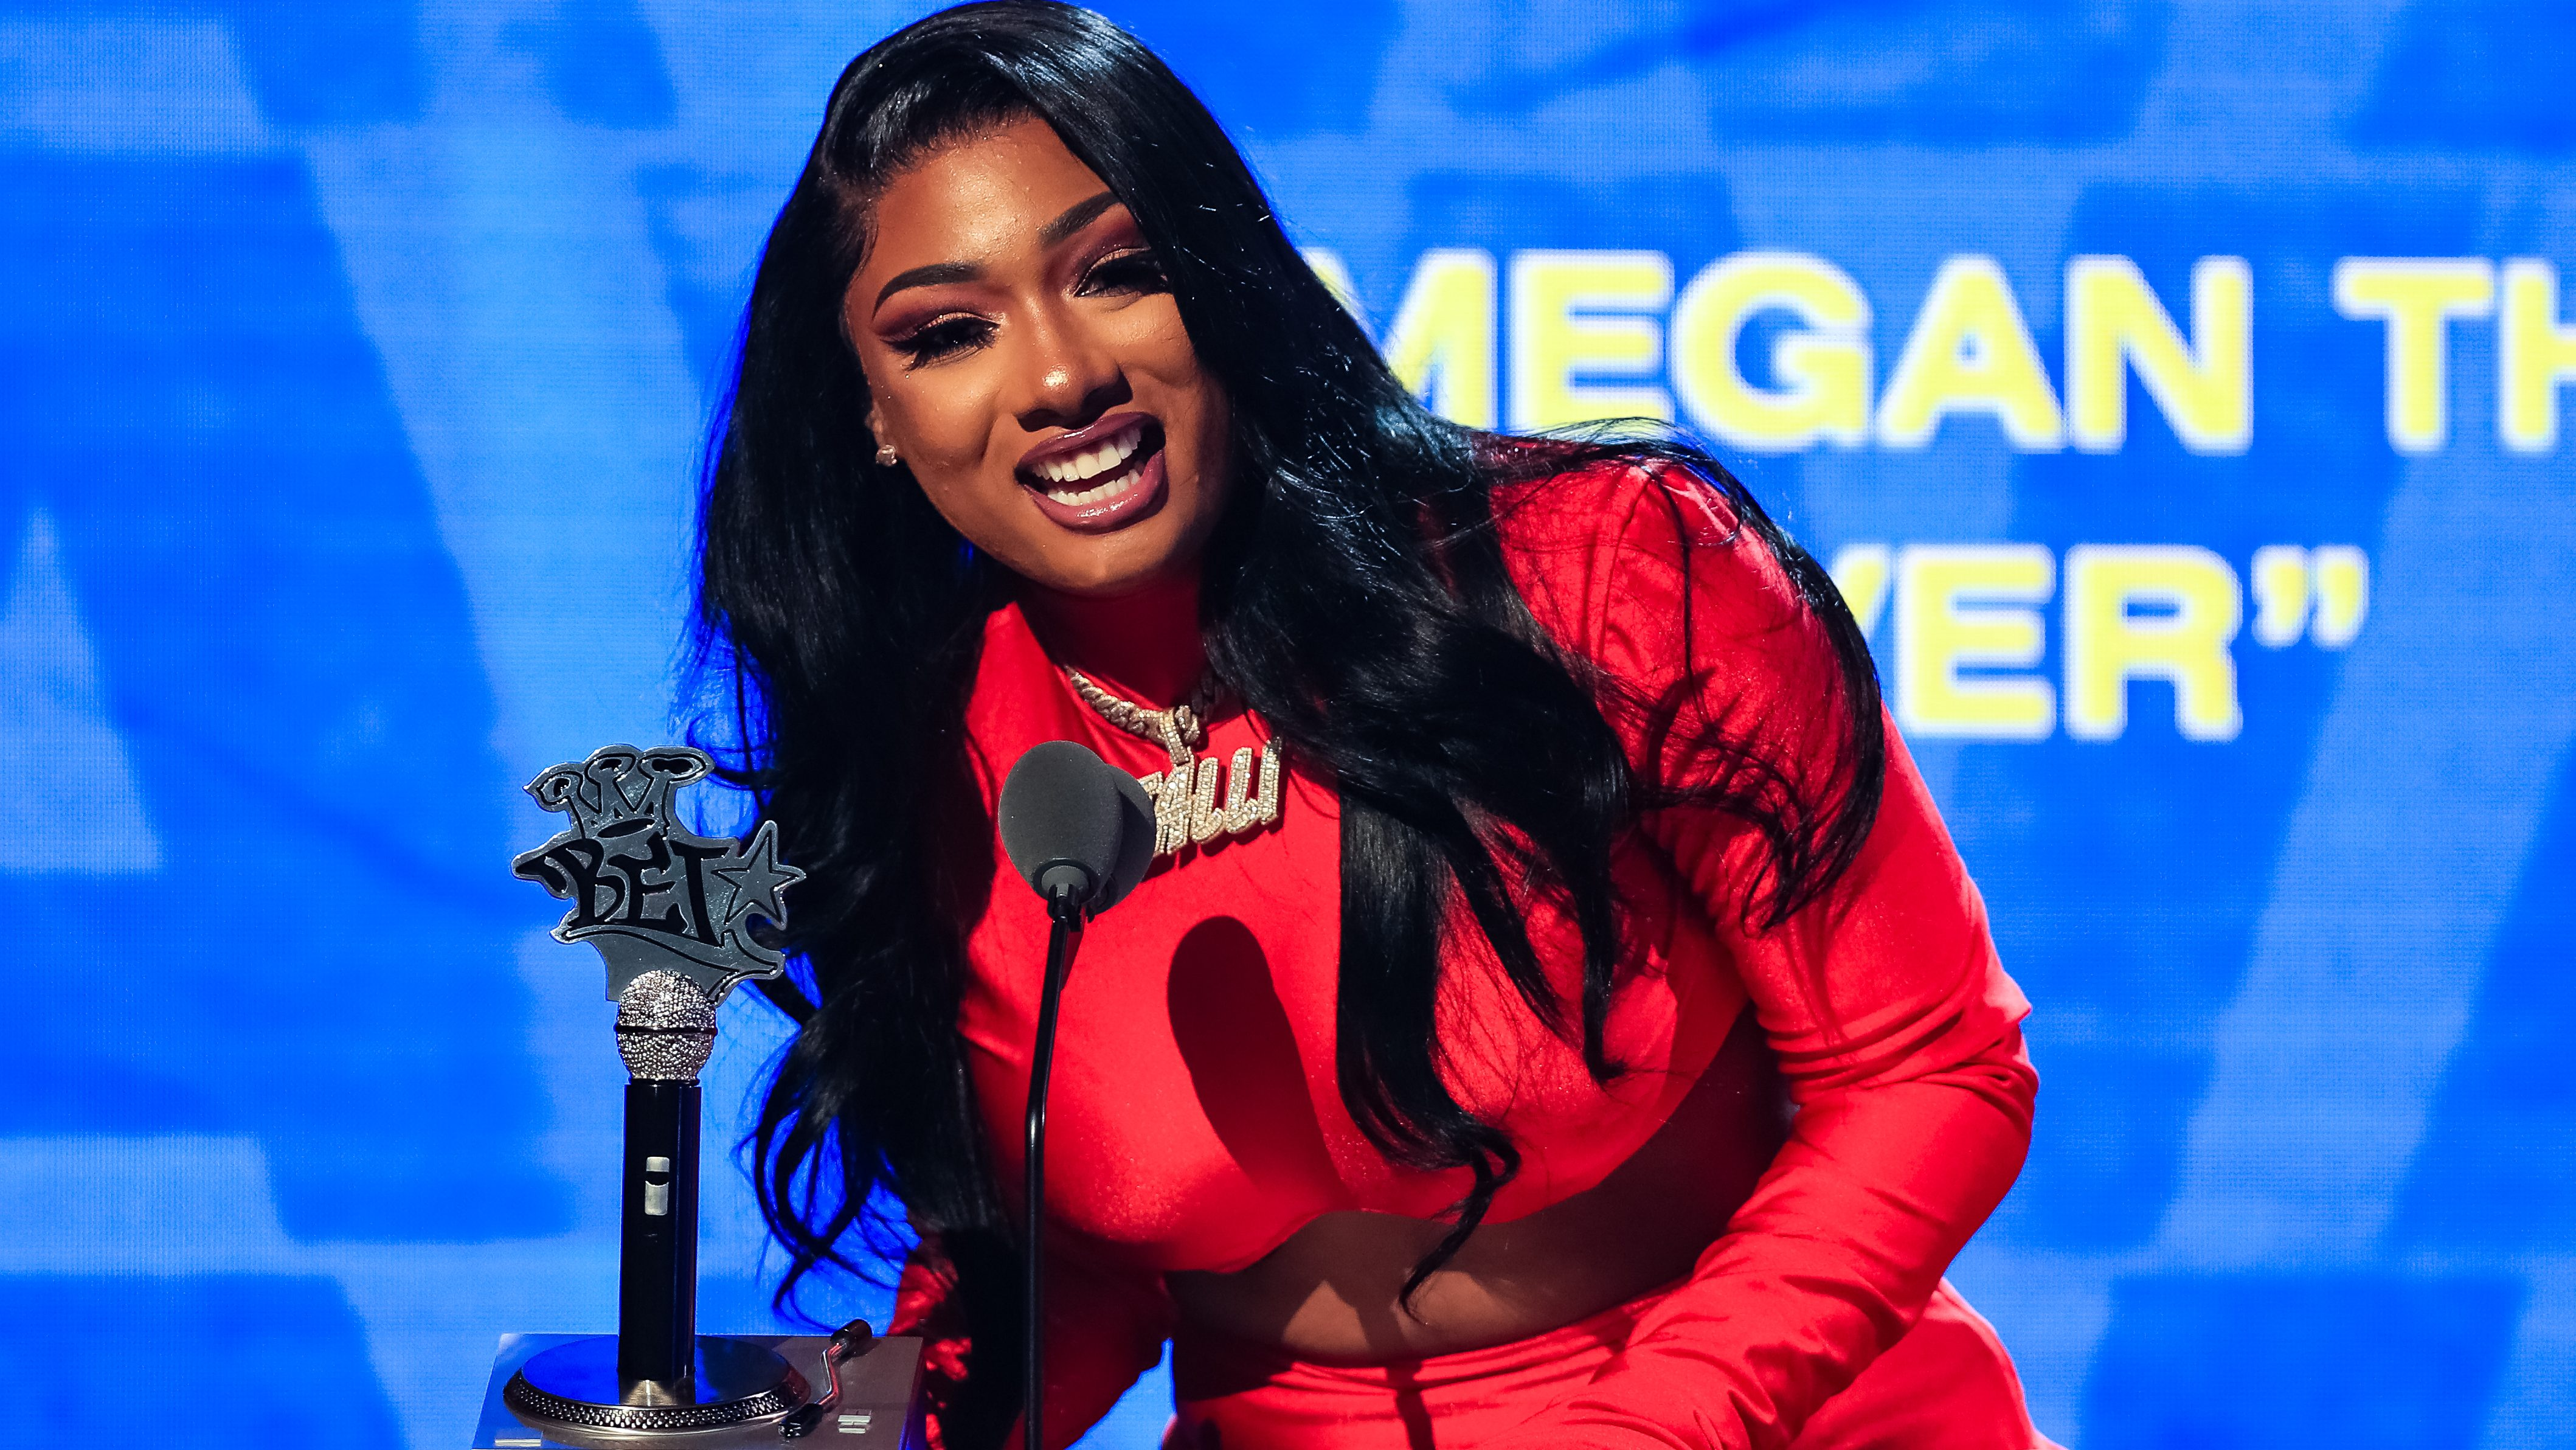 Megan Thee Stallion 5 Fast Facts You Need To Know Qnewshub